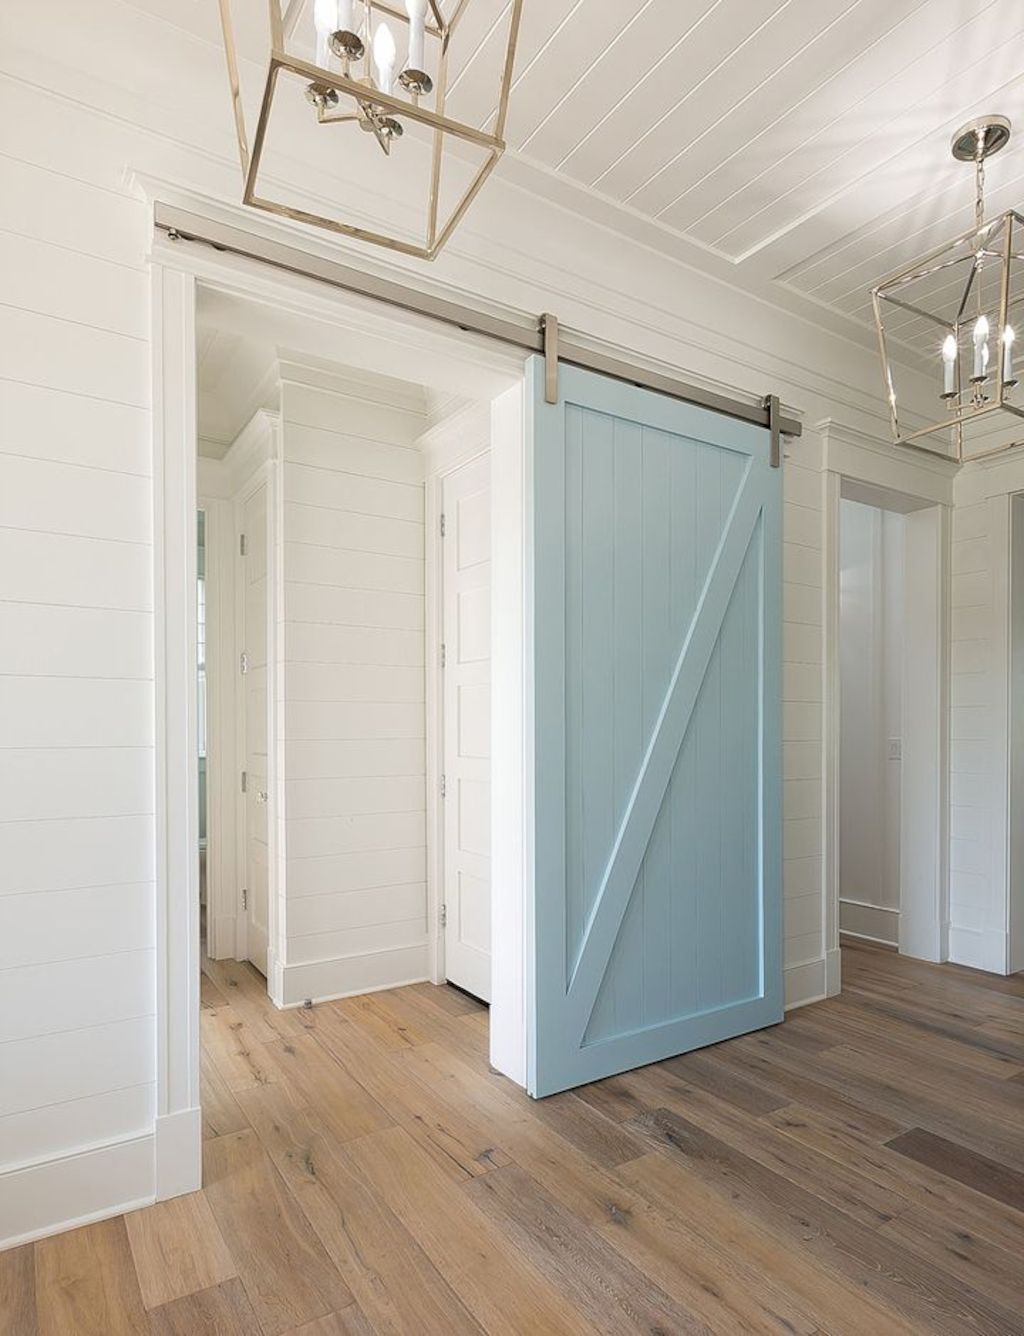 Barn style sliding doors designed for modern rustic home look lovely with traditional finish Image 7